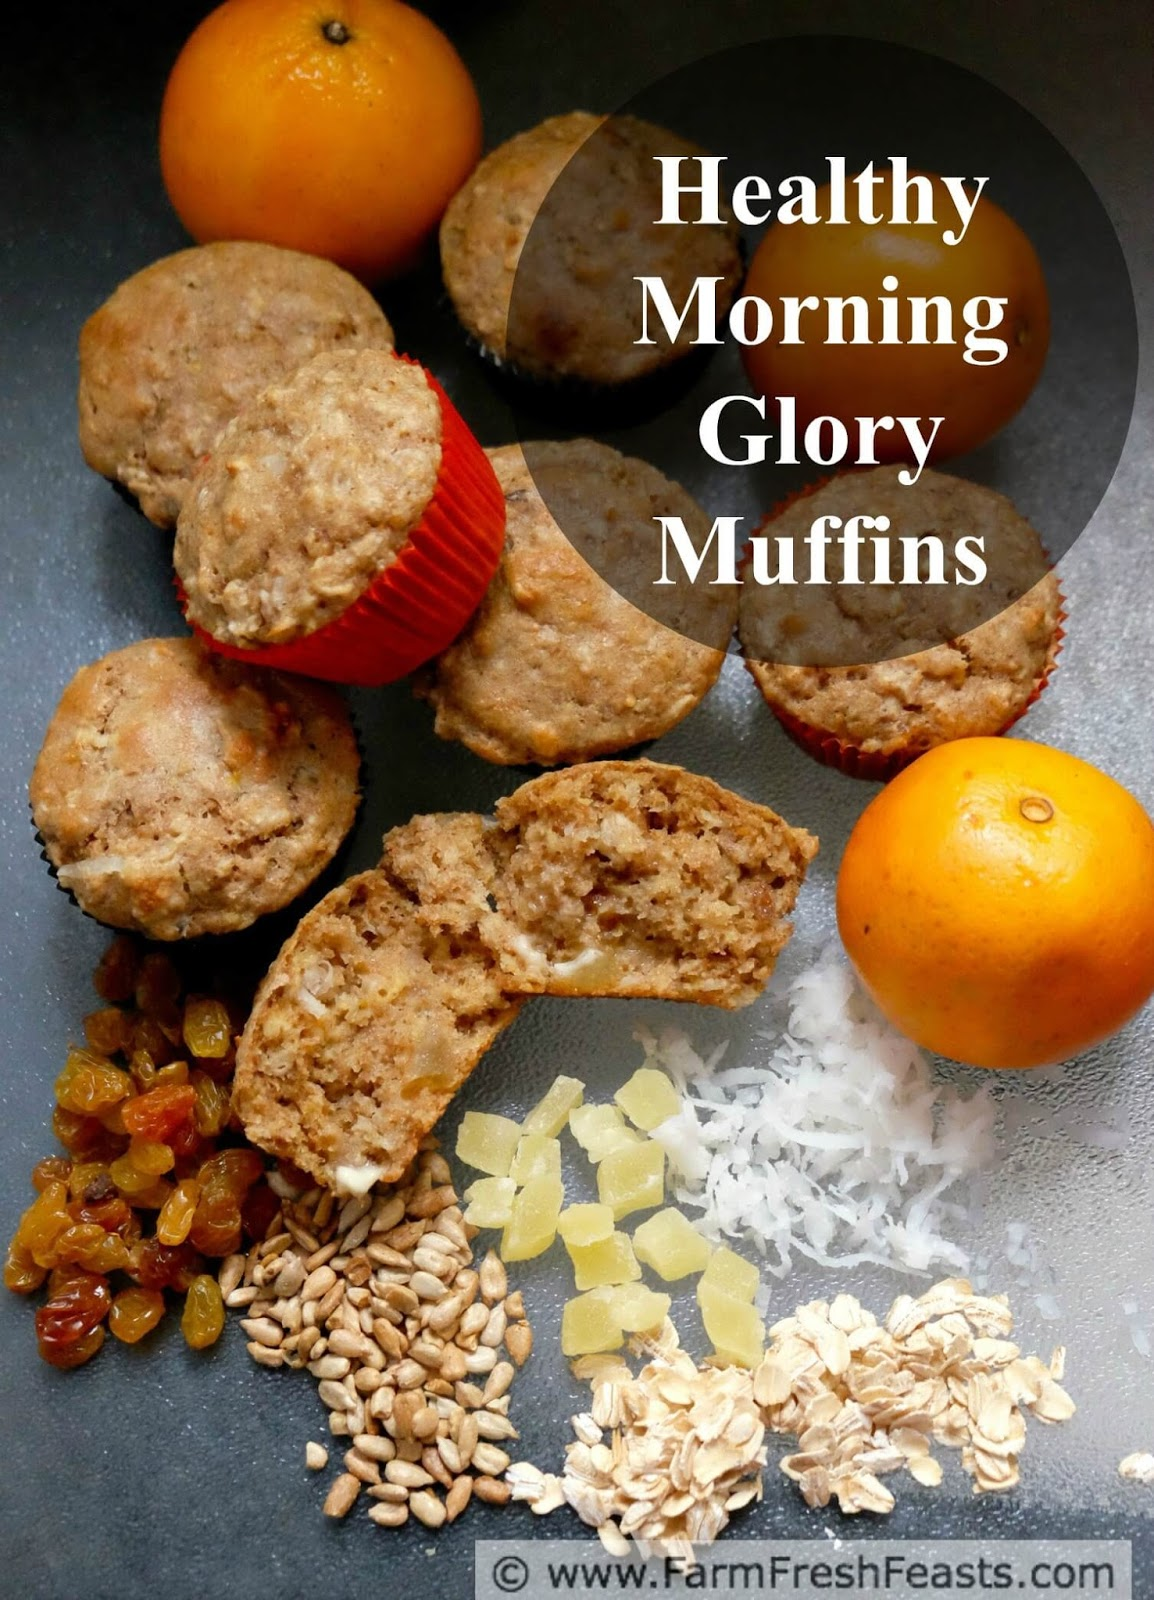 Farm Fresh Feasts: Healthy Morning Glory Muffins